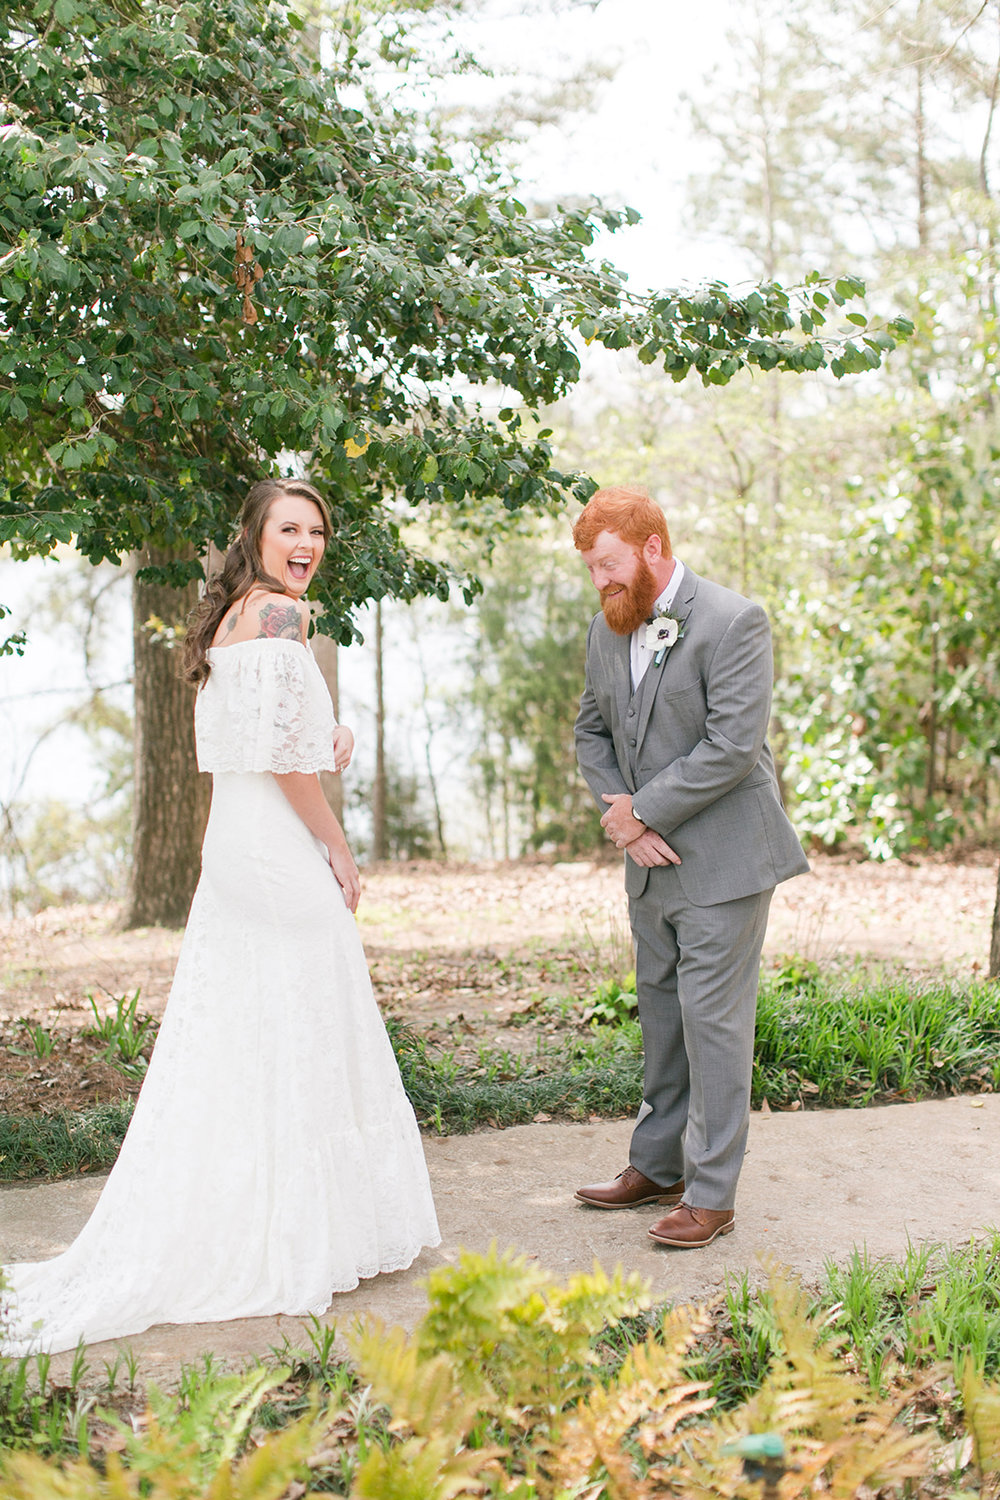 ivory-and-beau-bridal-boutique-i-and-b-bride-hillary-sidney-middlebrooks-photography-winnie-daughters-of-simone-the-venue-at-tryphena's-garden-11.jpg